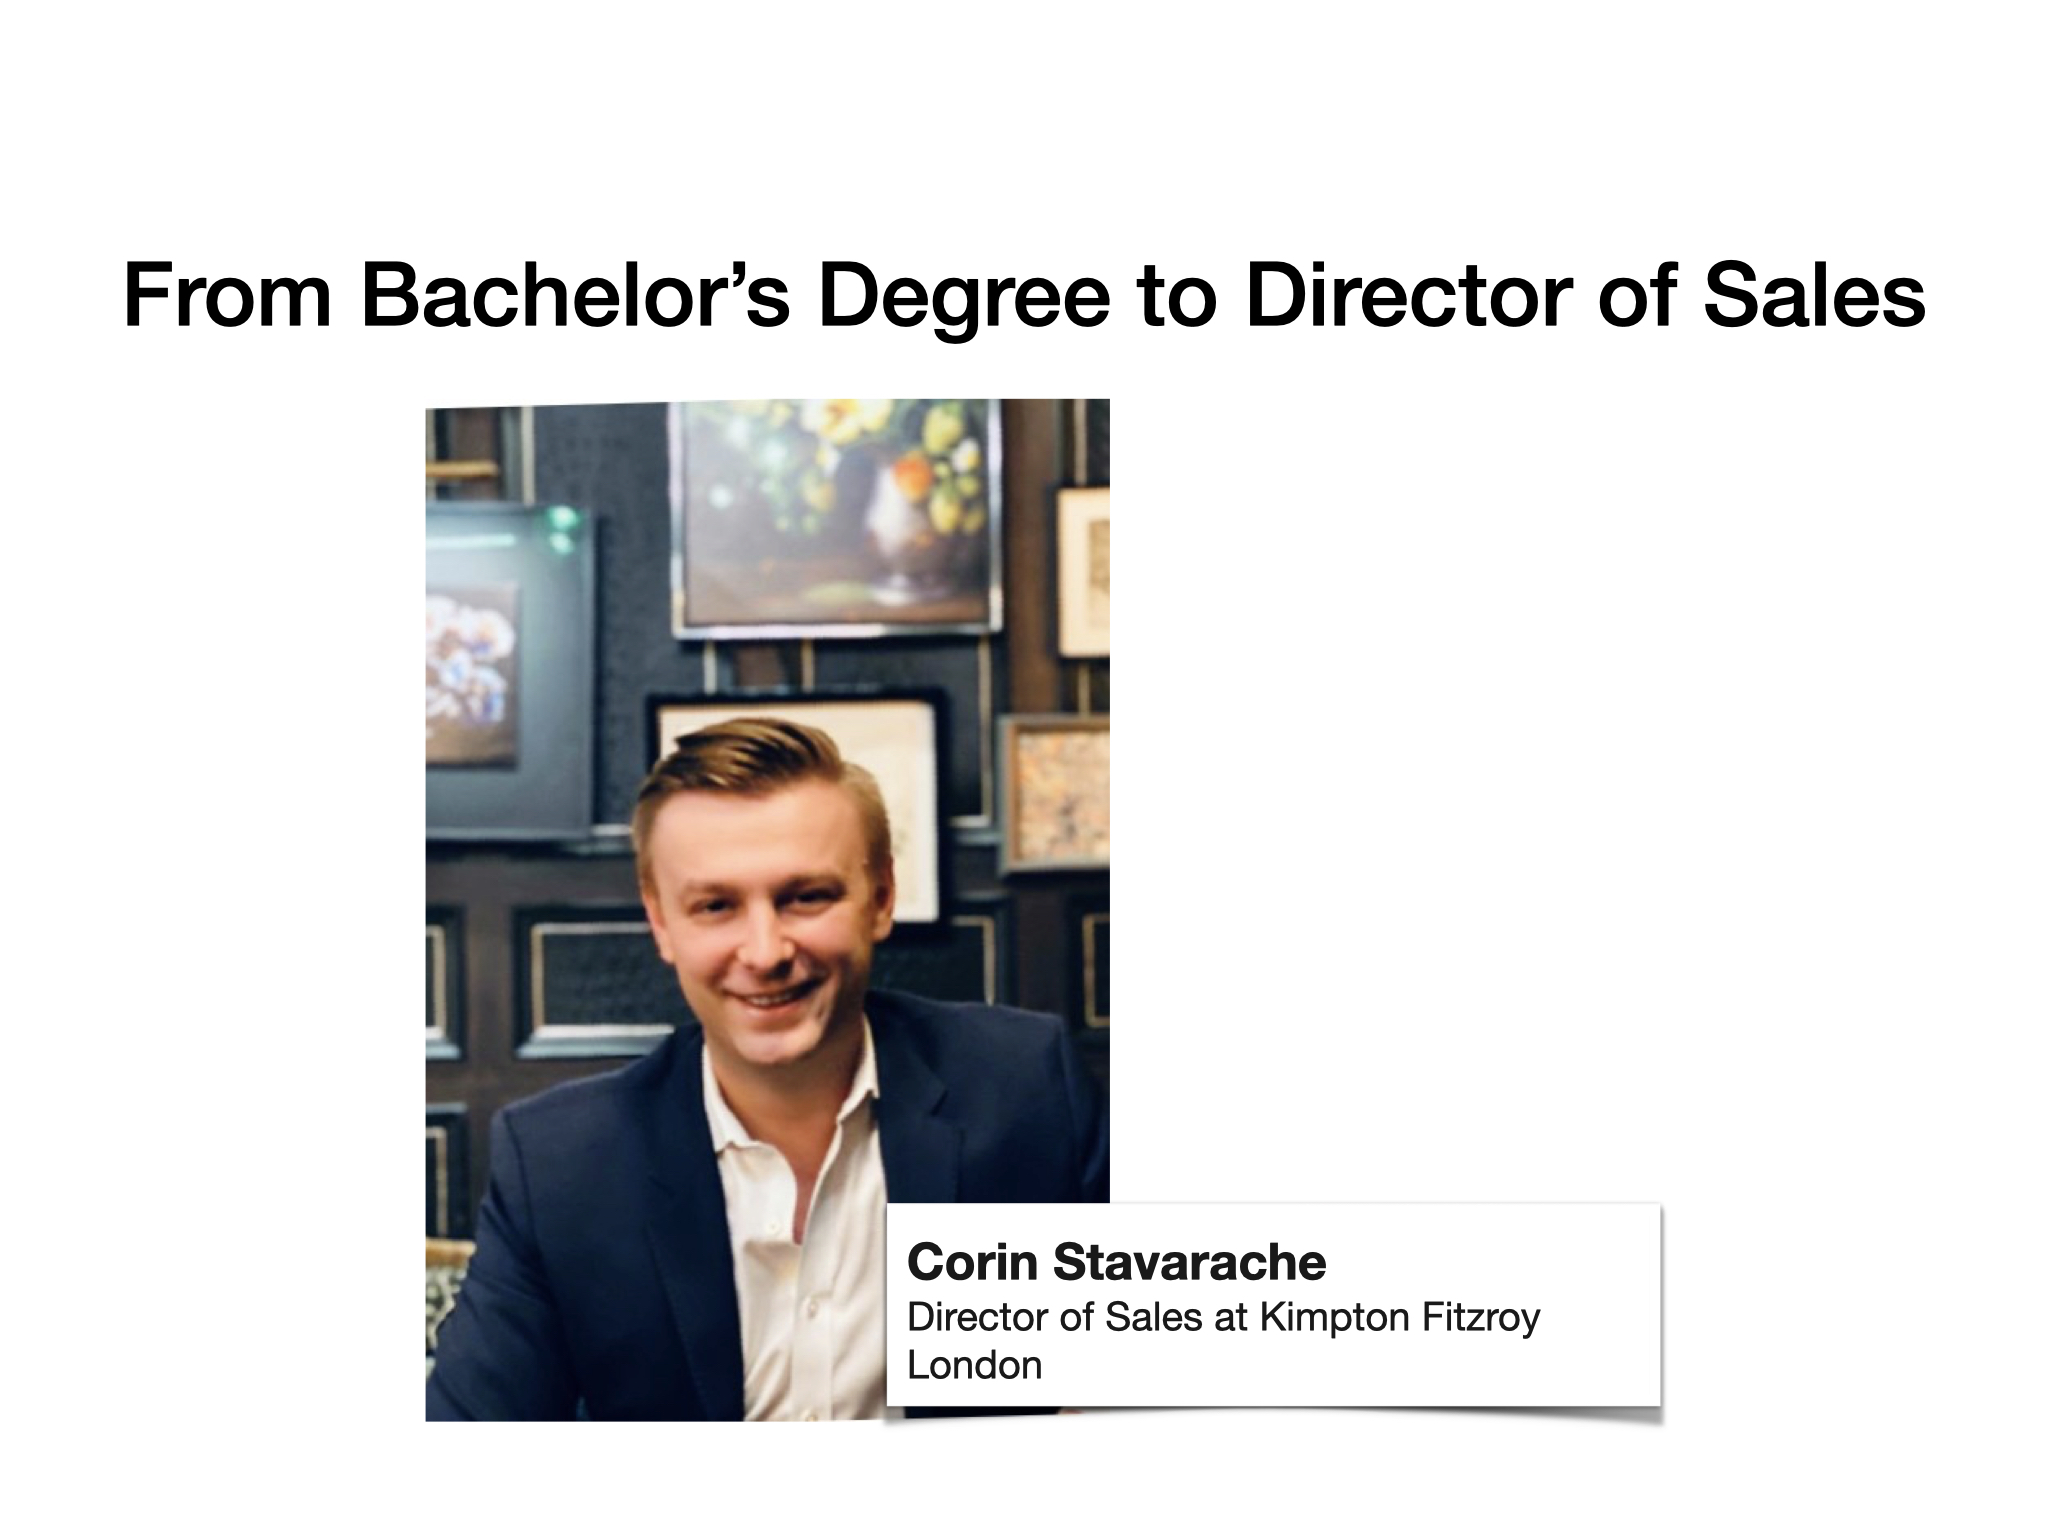 Corin Stavarache – From Bachelor's Degree to Director of Sales